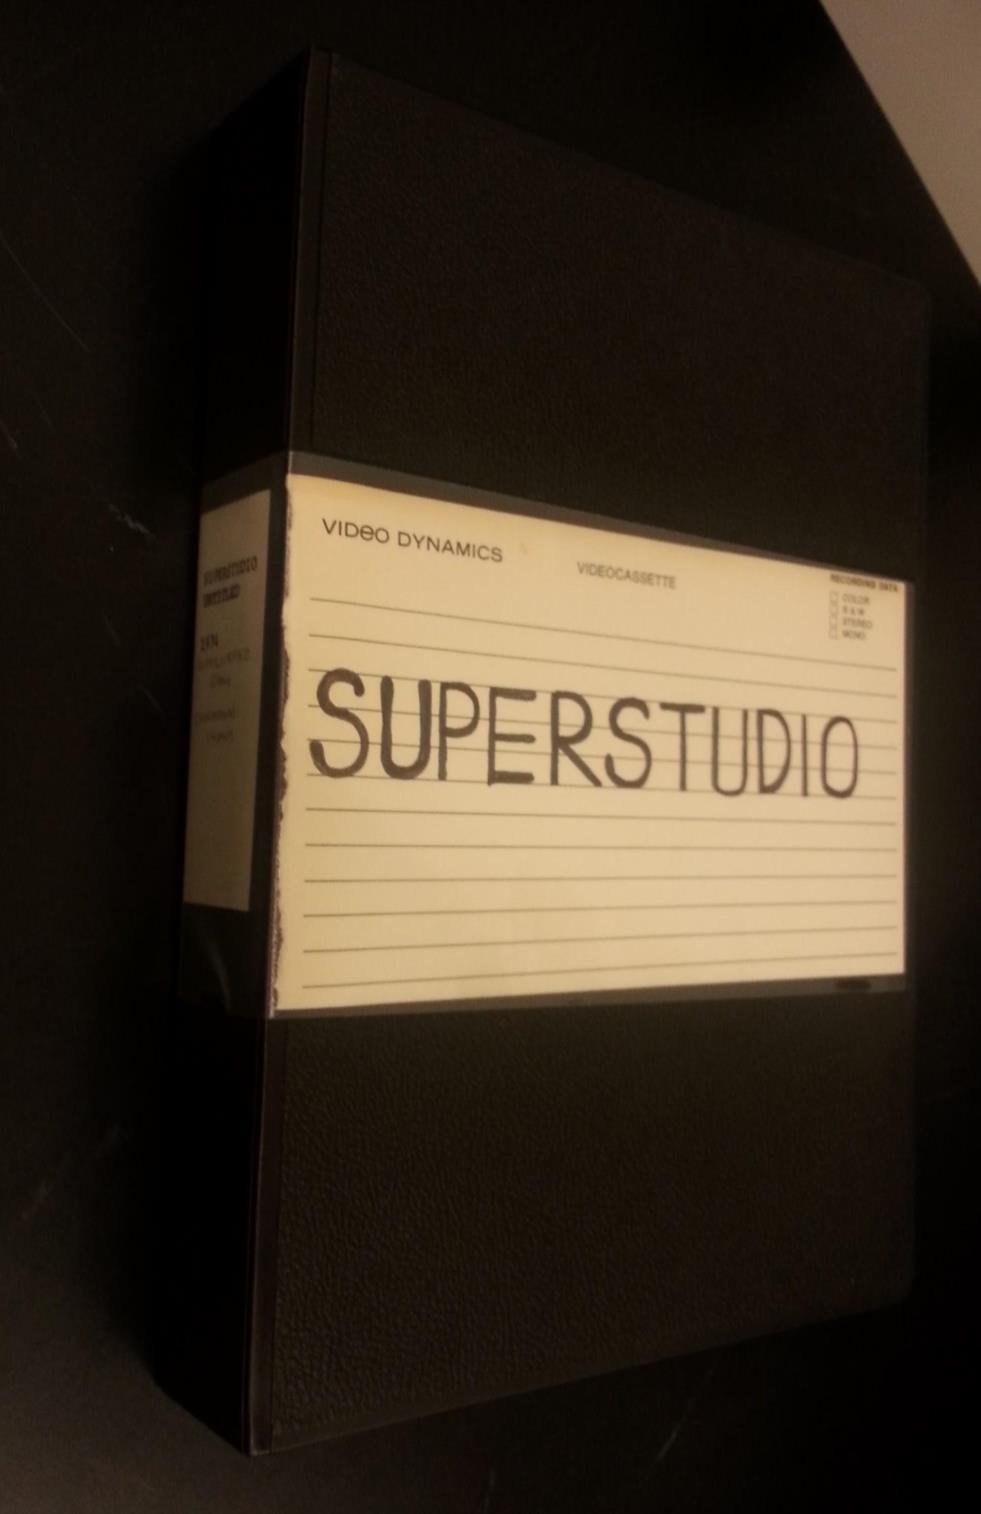 Fig. 2. Case of the U-matic videocassette of Superstudio. The Long Beach Museum of Art Video Archive, circa 1970-2000. 1972, the Getty Research Institute, 12 Feb. 2015.